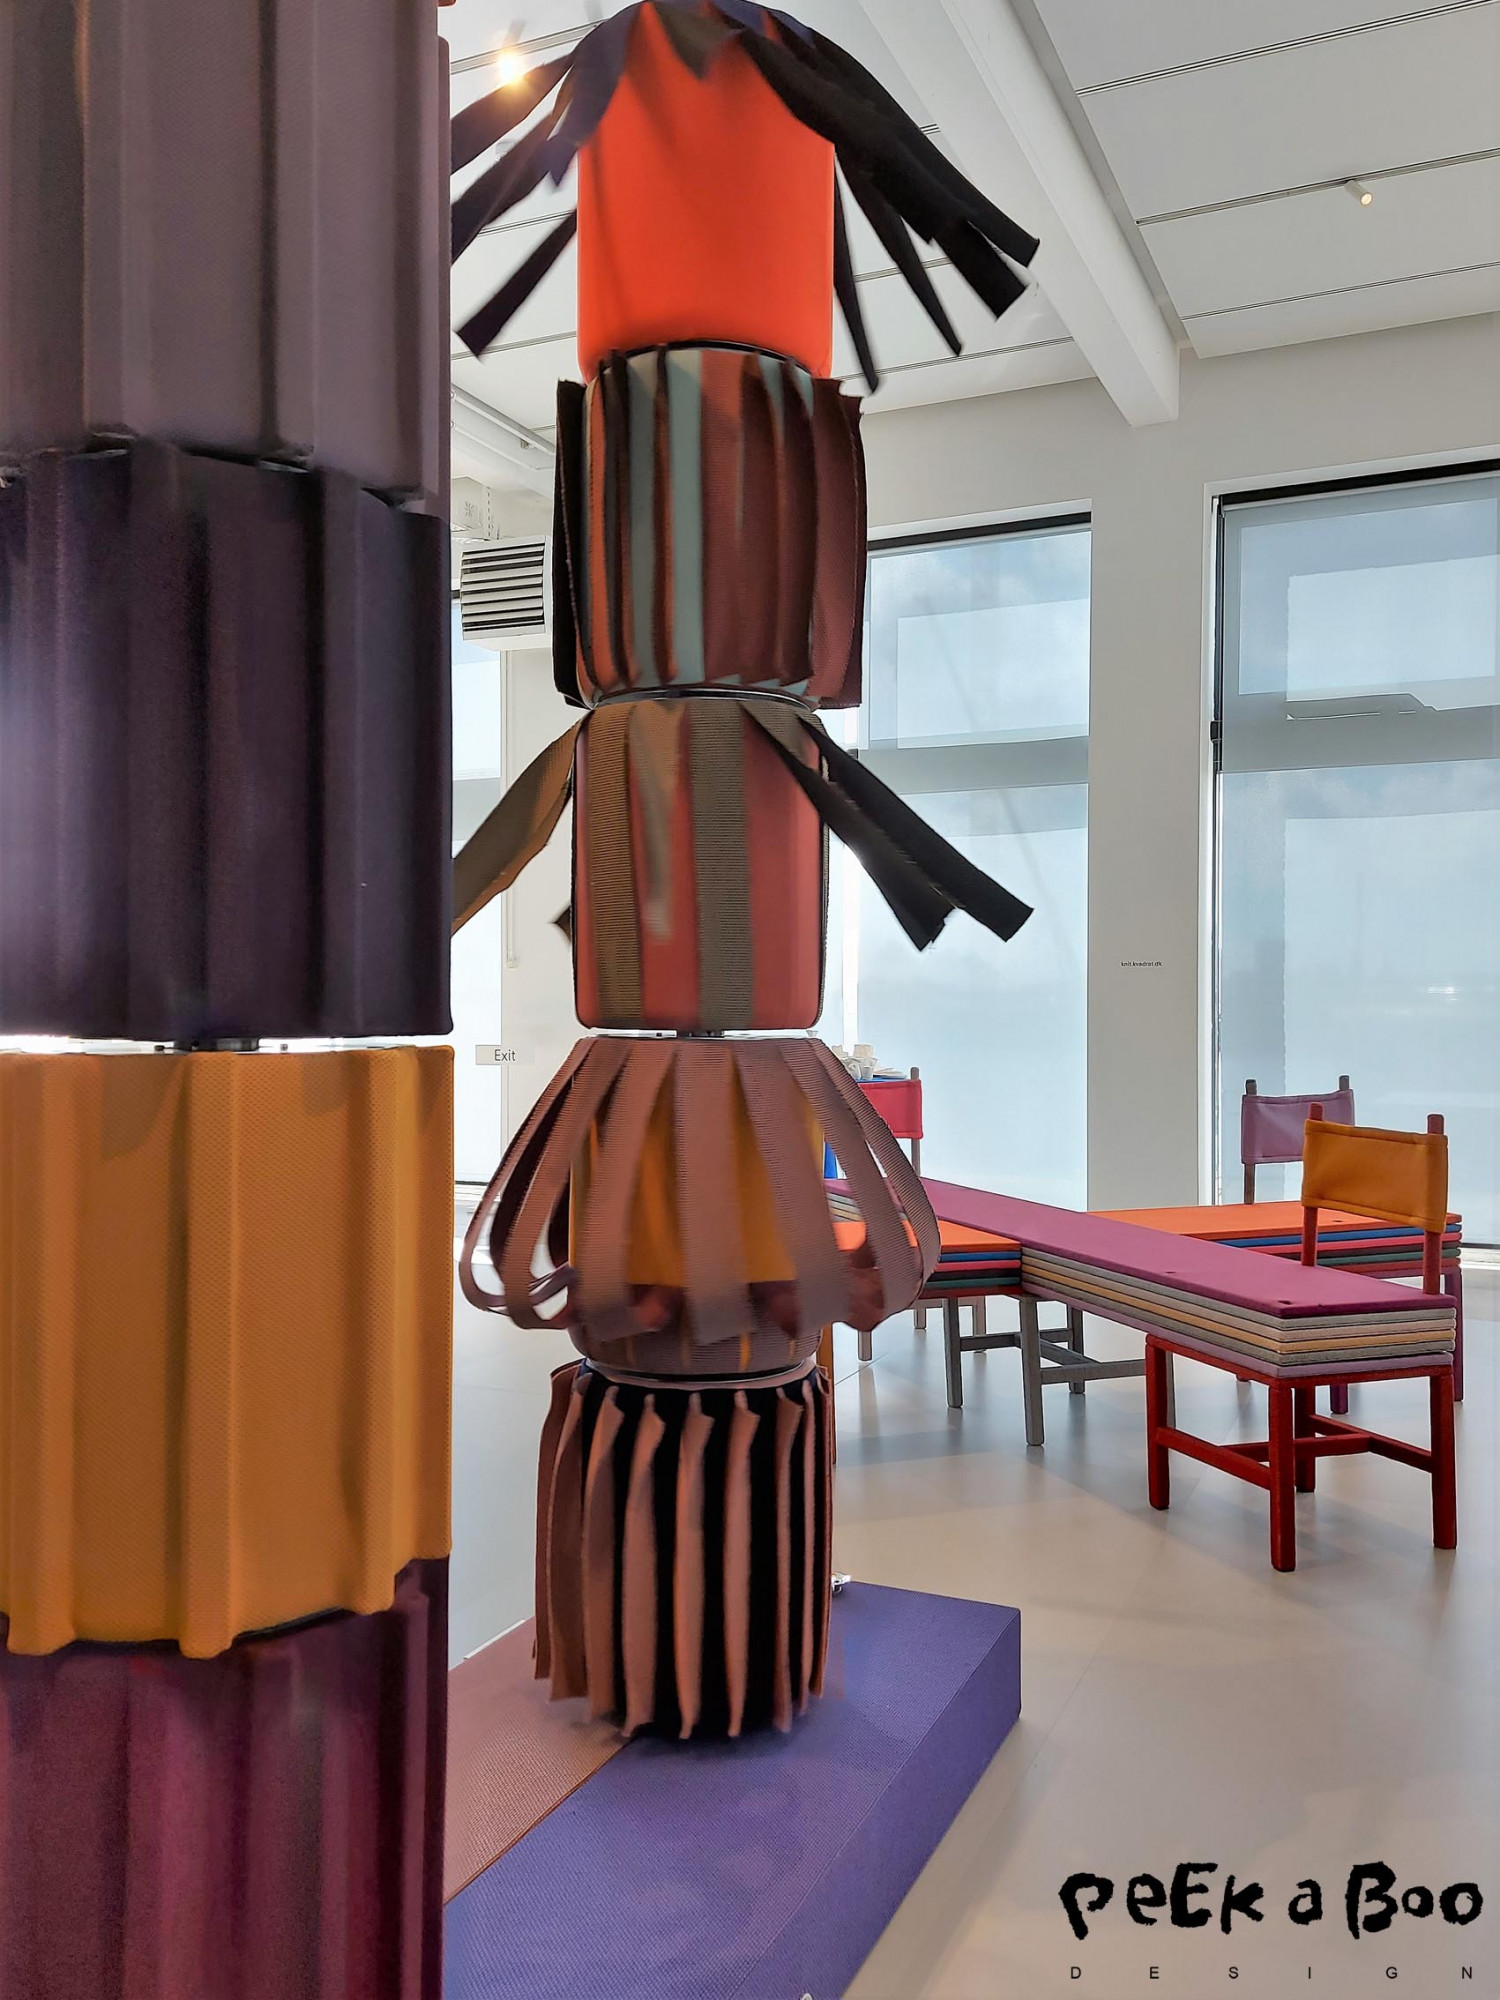 This turning pillar made the colour combinations countless. This was made by Objects of common Interest.